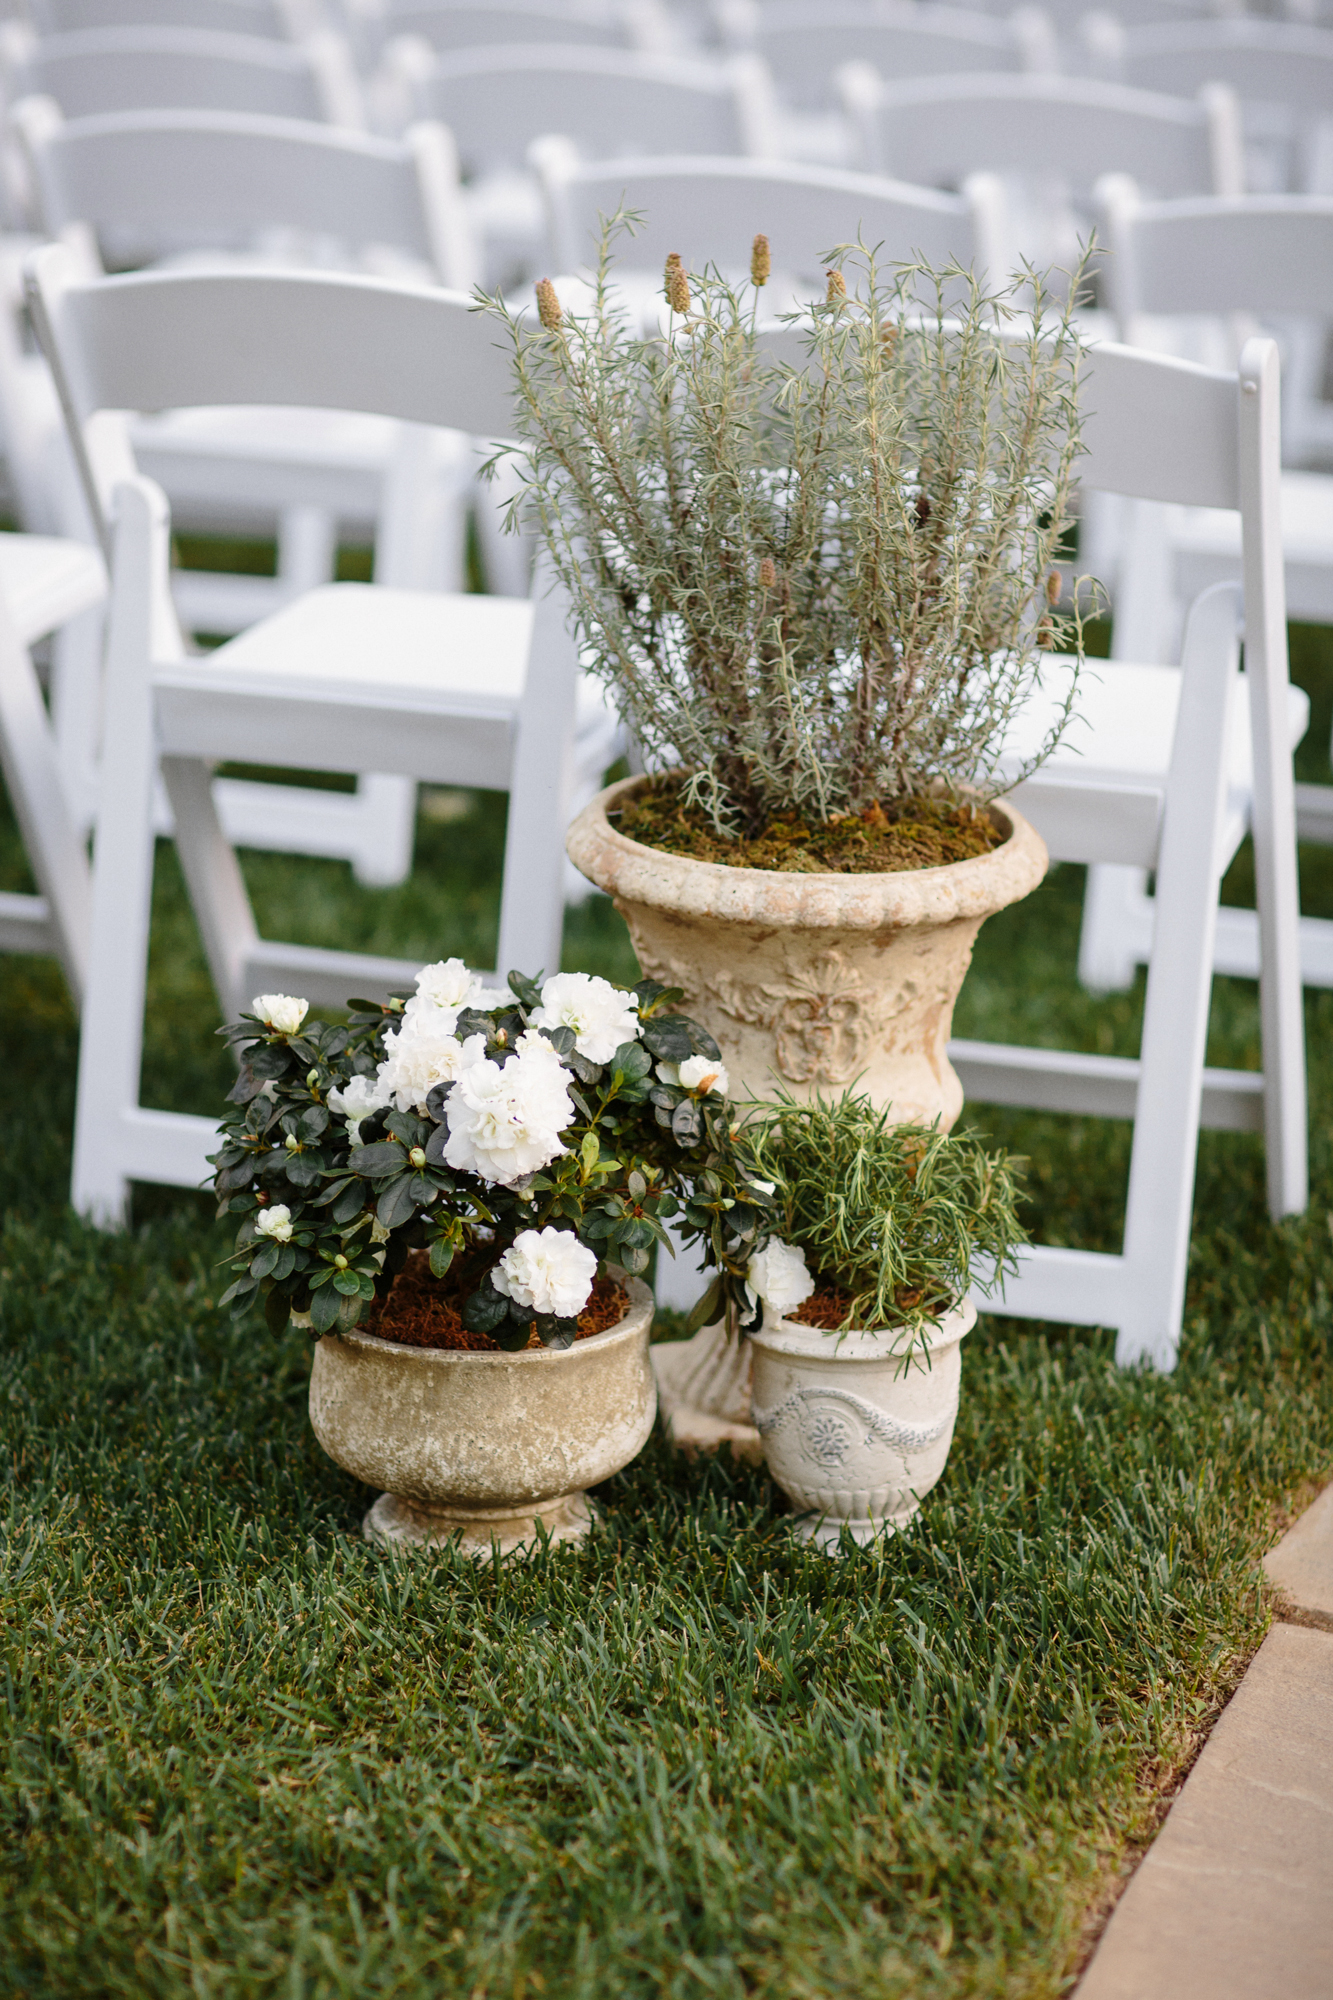 Outdoor California Ceremony with Timeless Reception - Olive Willow Designs